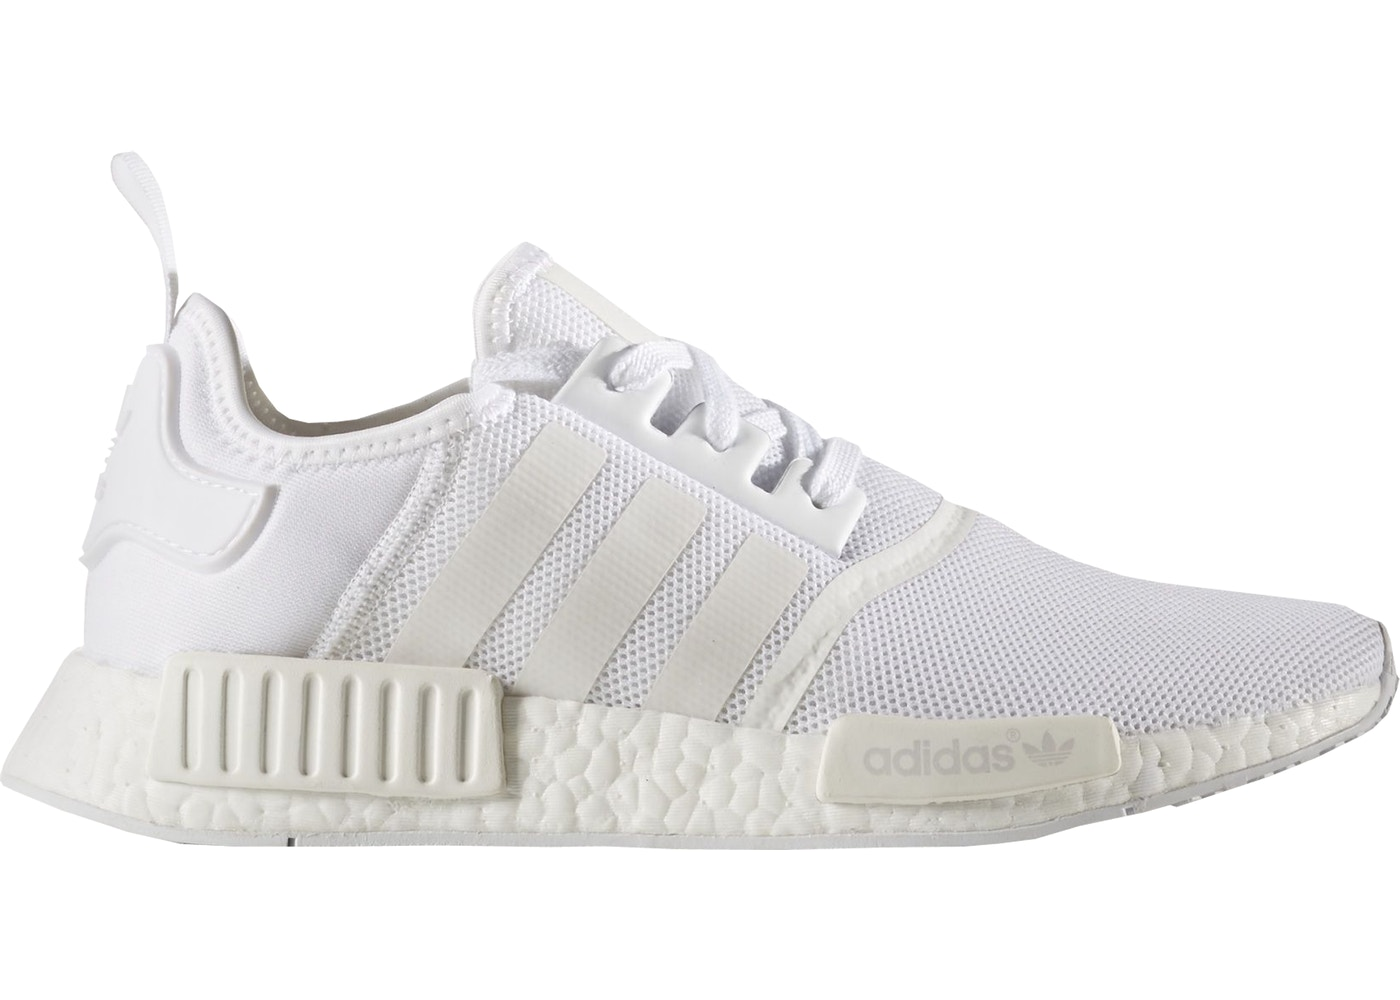 adidas nmd r1 triple white. Black Bedroom Furniture Sets. Home Design Ideas